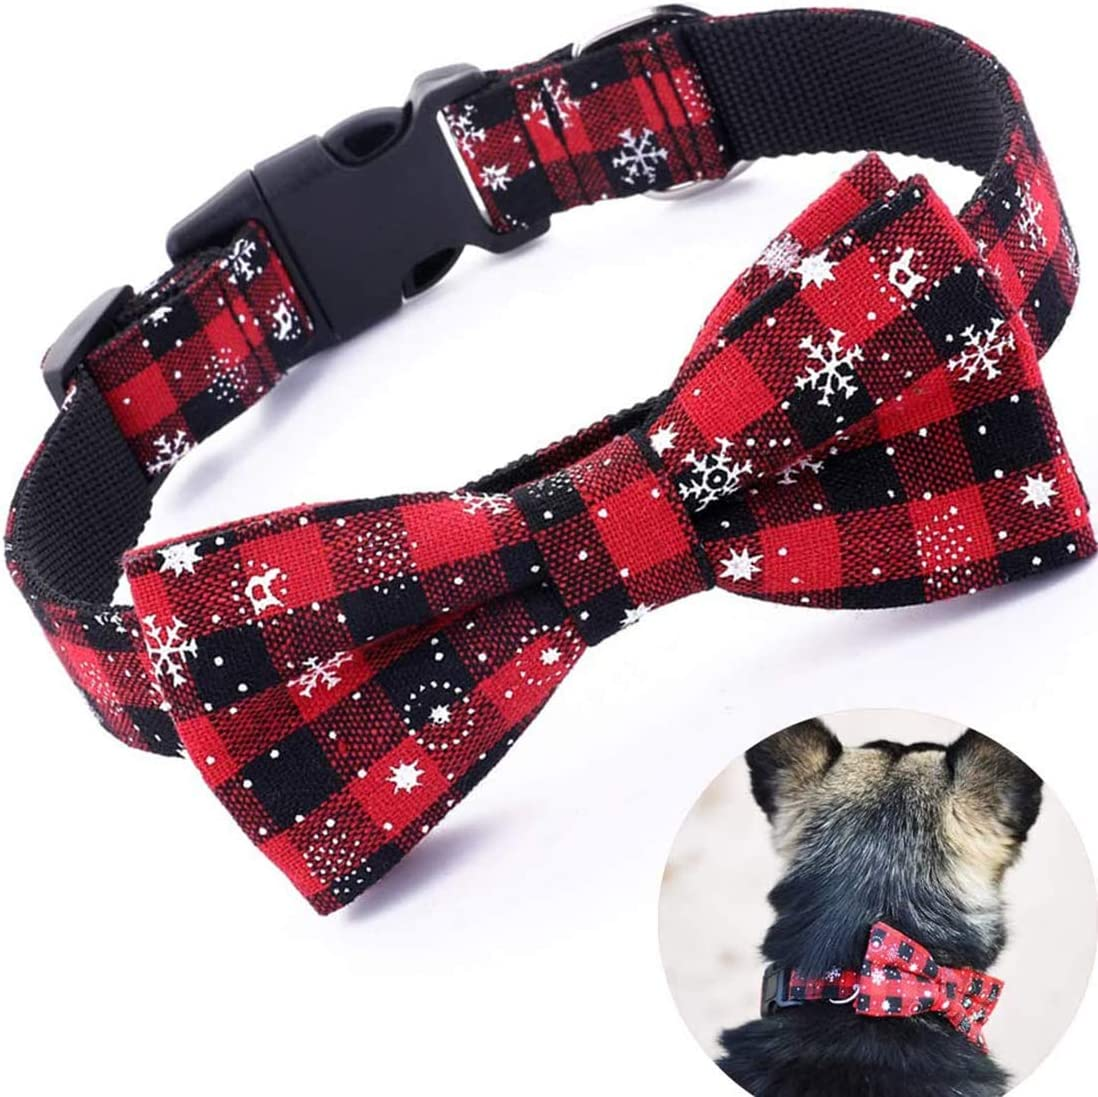 LATFZ Christmas Dog Collar High quality new Adjustable Snowflake Blac Red 2021new shipping free Pattern